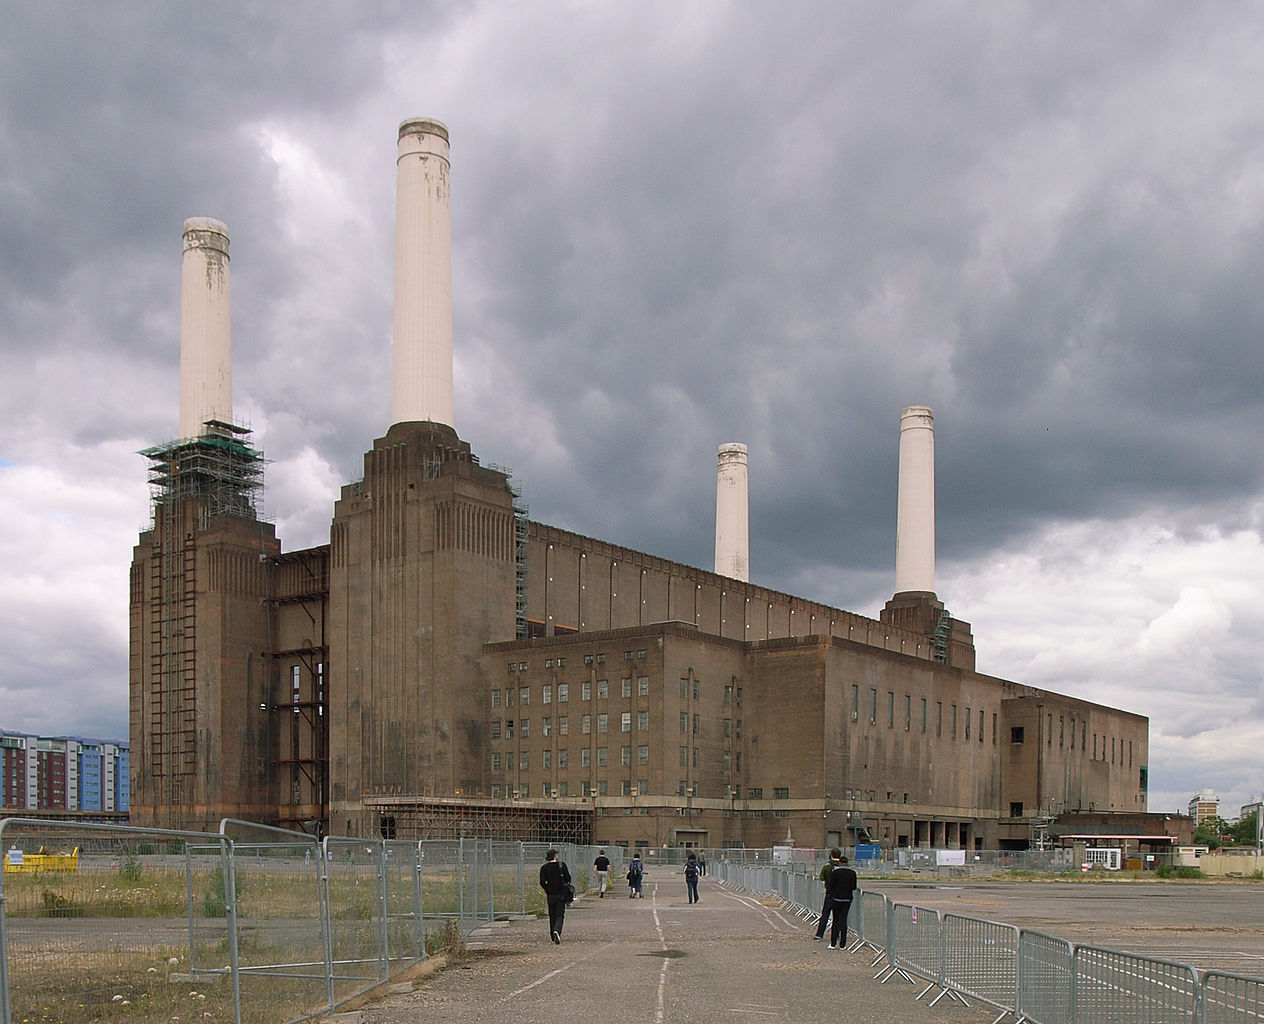 Battersea Power Station is a decommissioned coal-fired power station located on the south bank of the River Thames, in Battersea, South London. (Photo courtesy Wikimedia Commons)